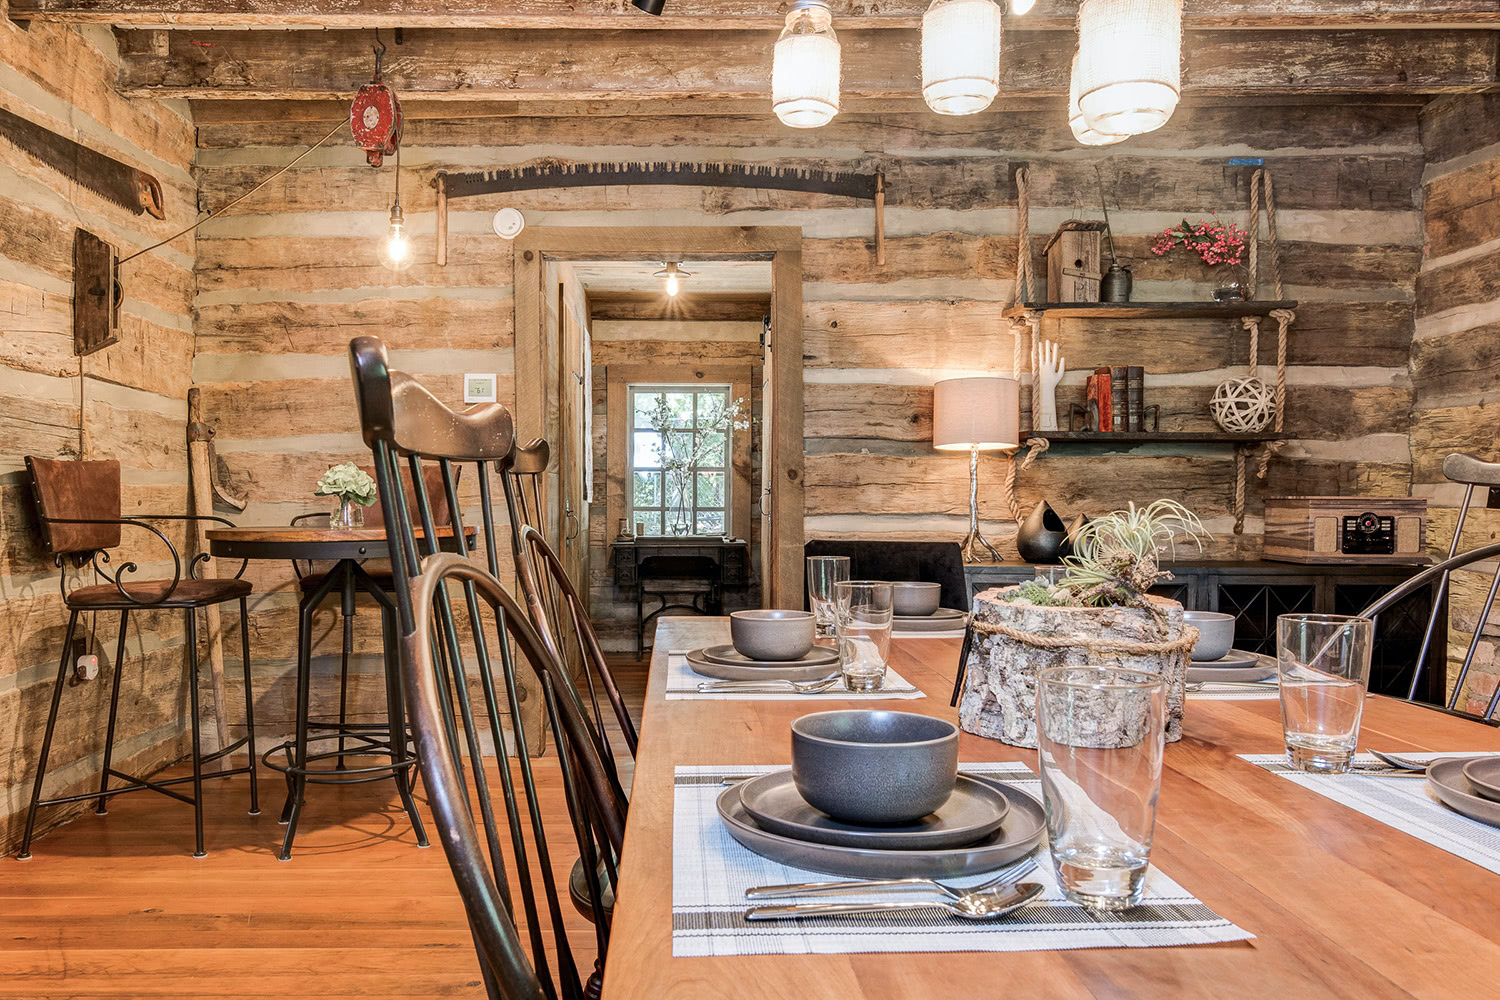 Rustic Re-do, Stratton Design Group